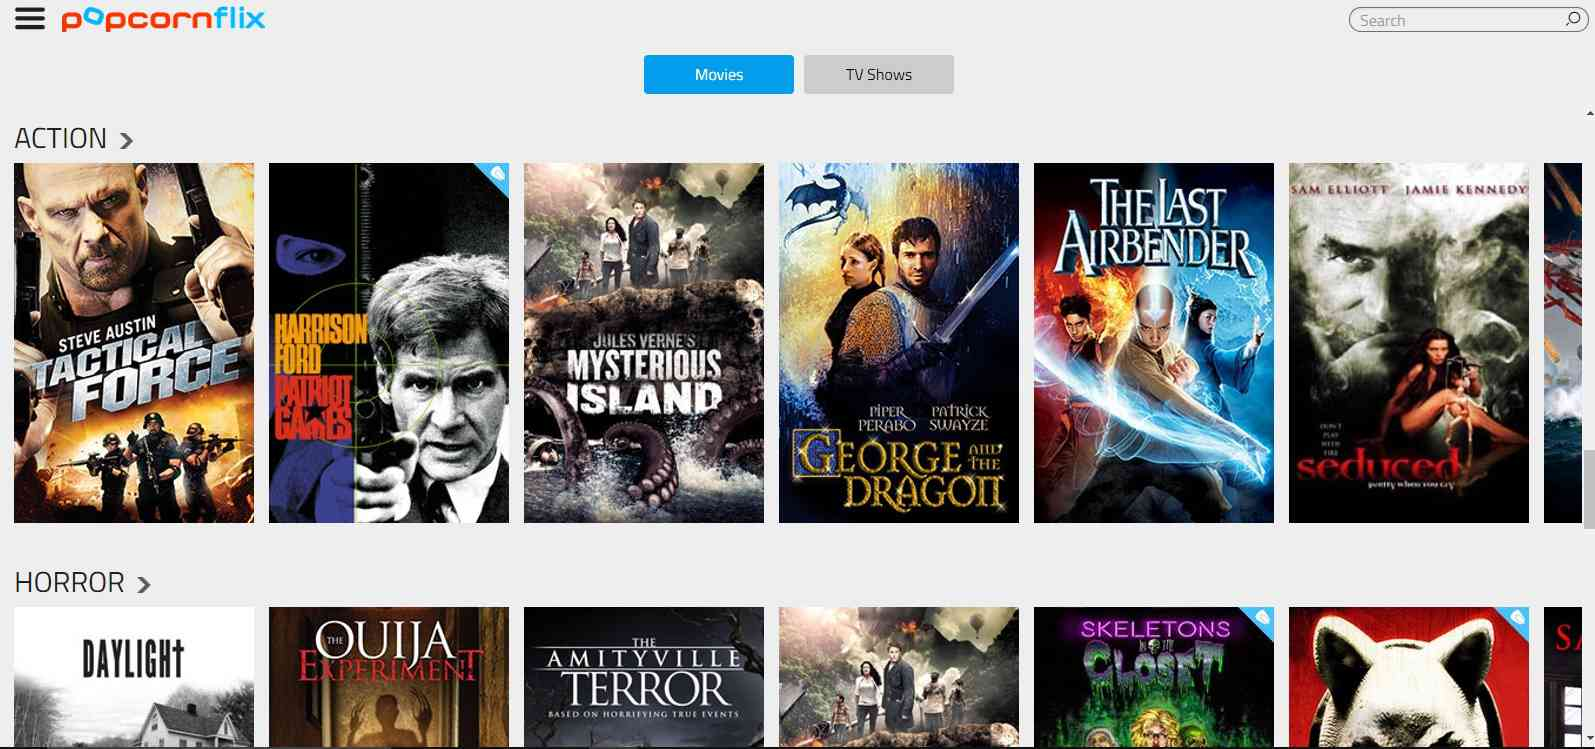 sites for free movies and tv shows